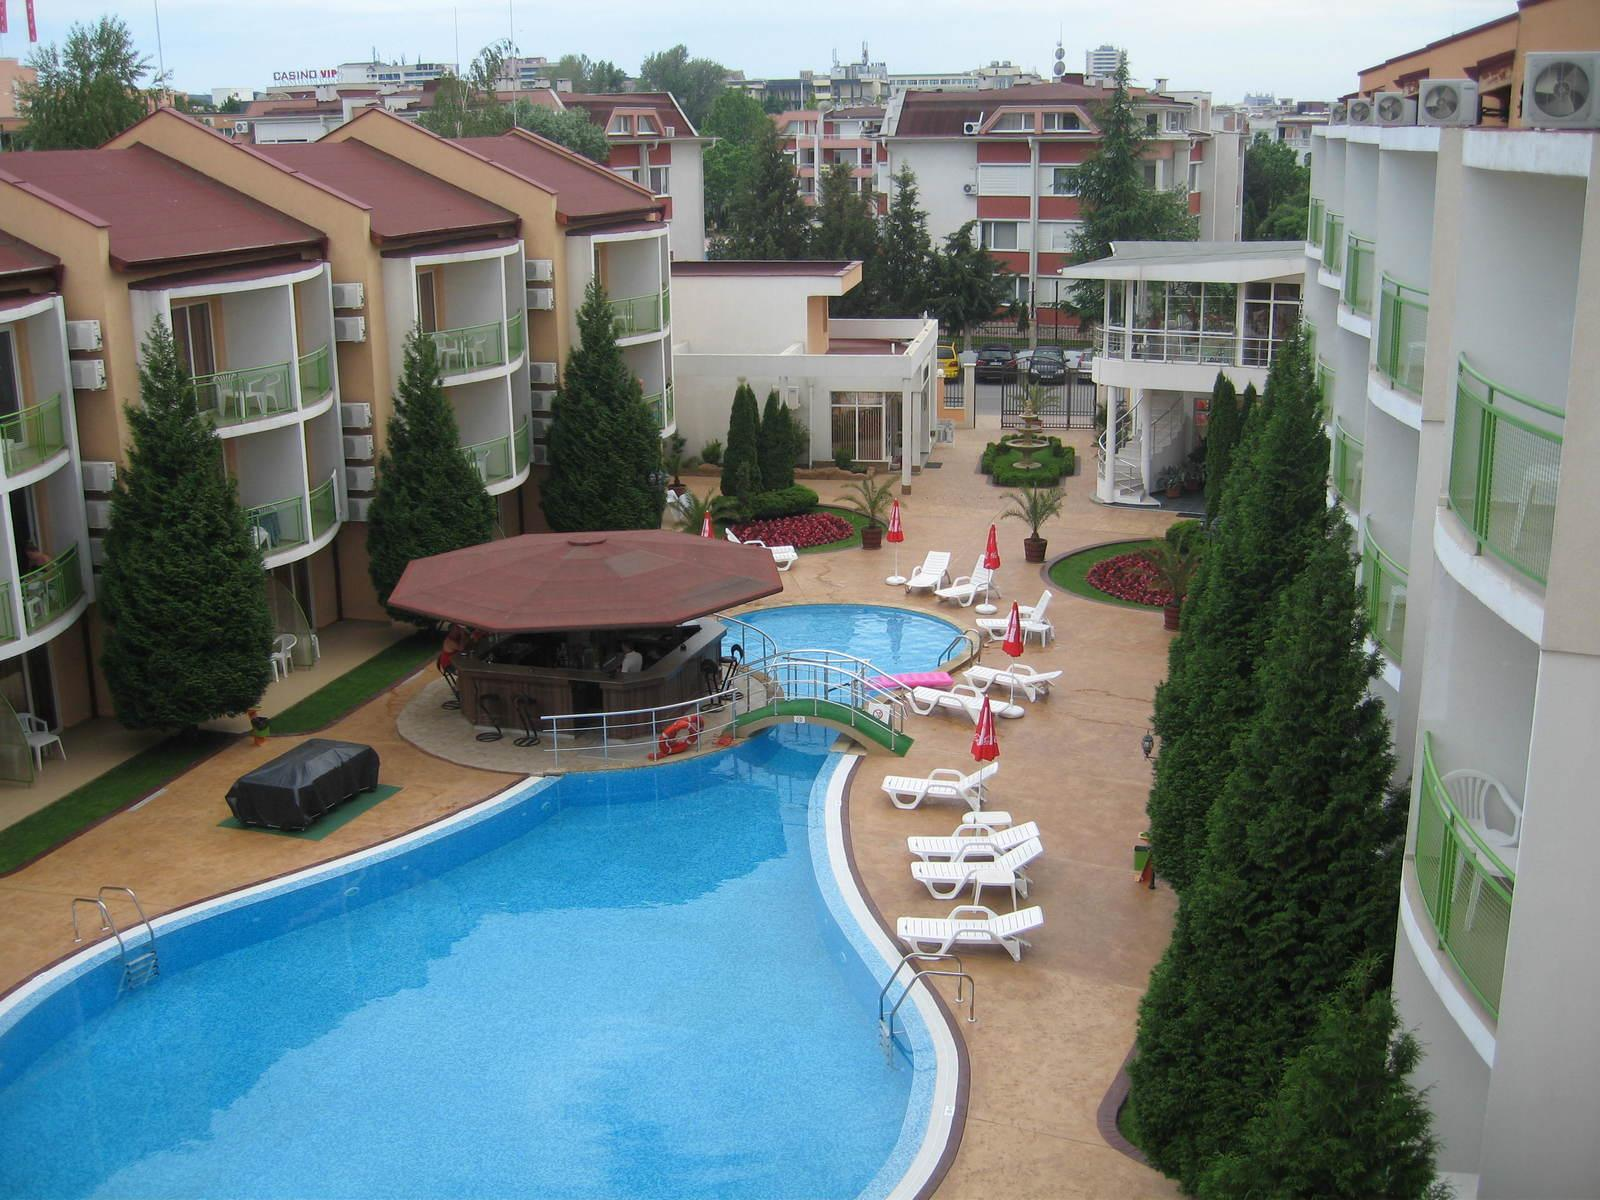 Sun City Hotel in Sunny Beach, Bulgaria